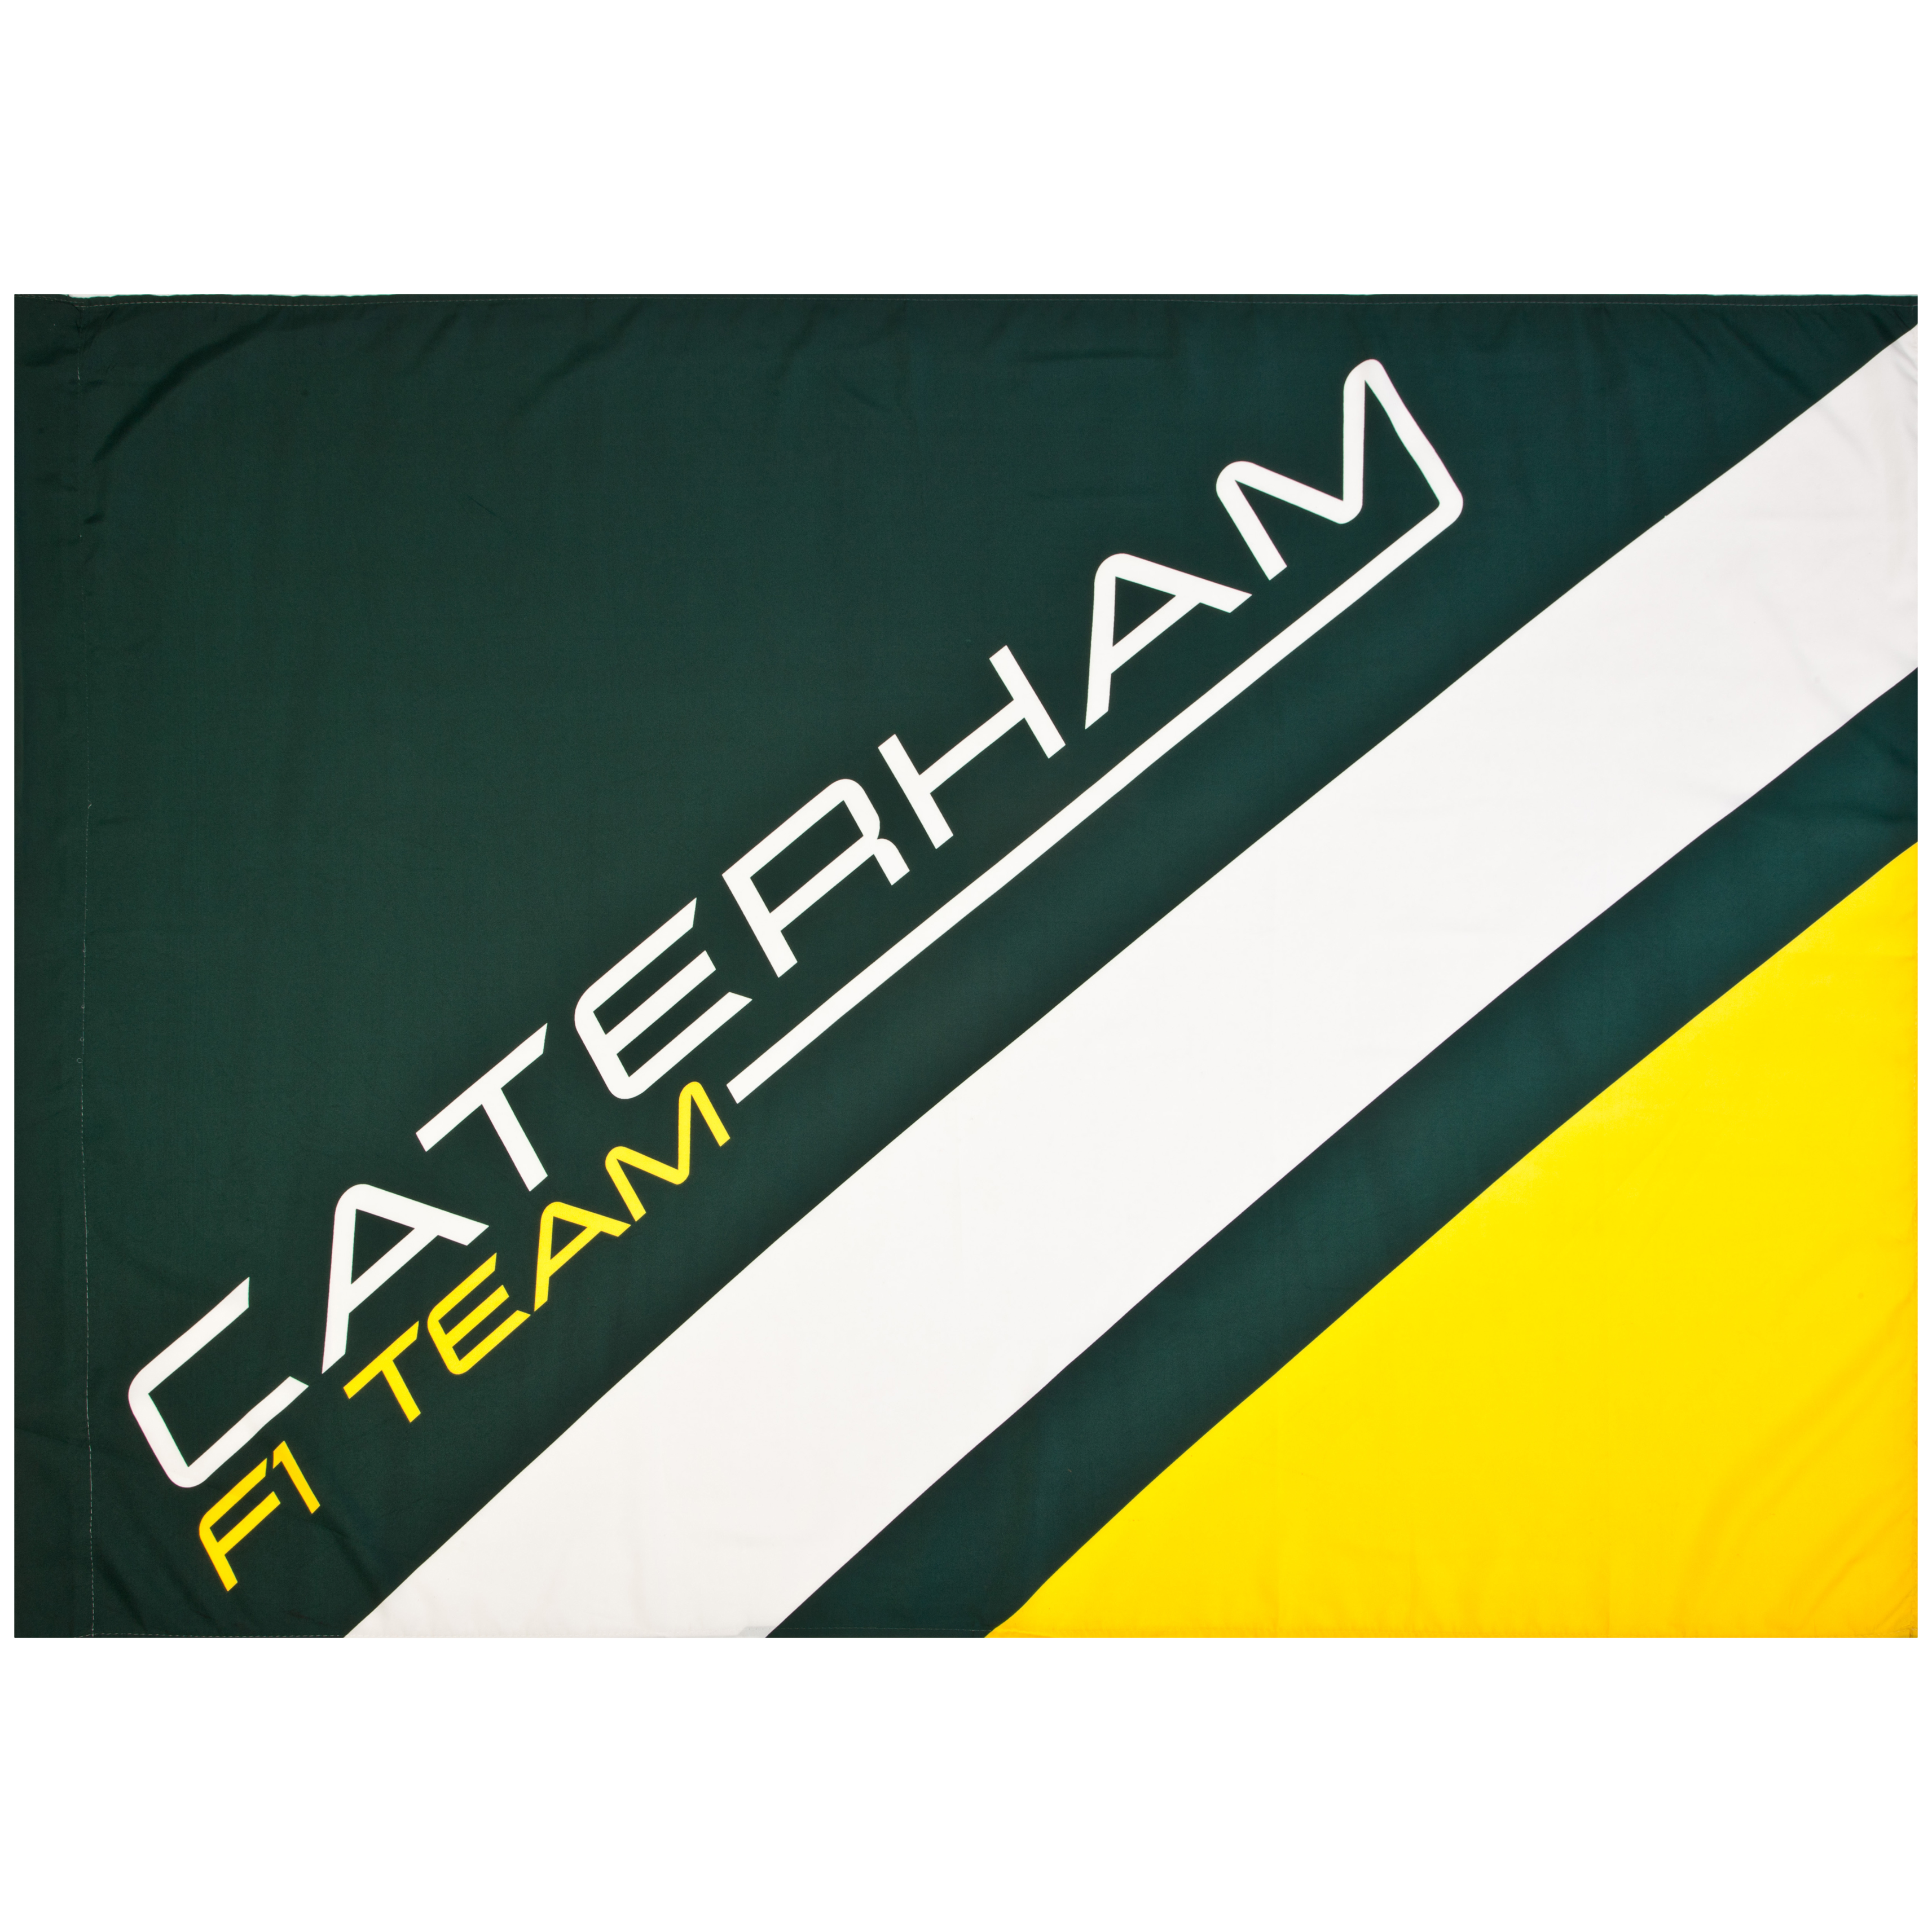 Caterham F1 Team Flag